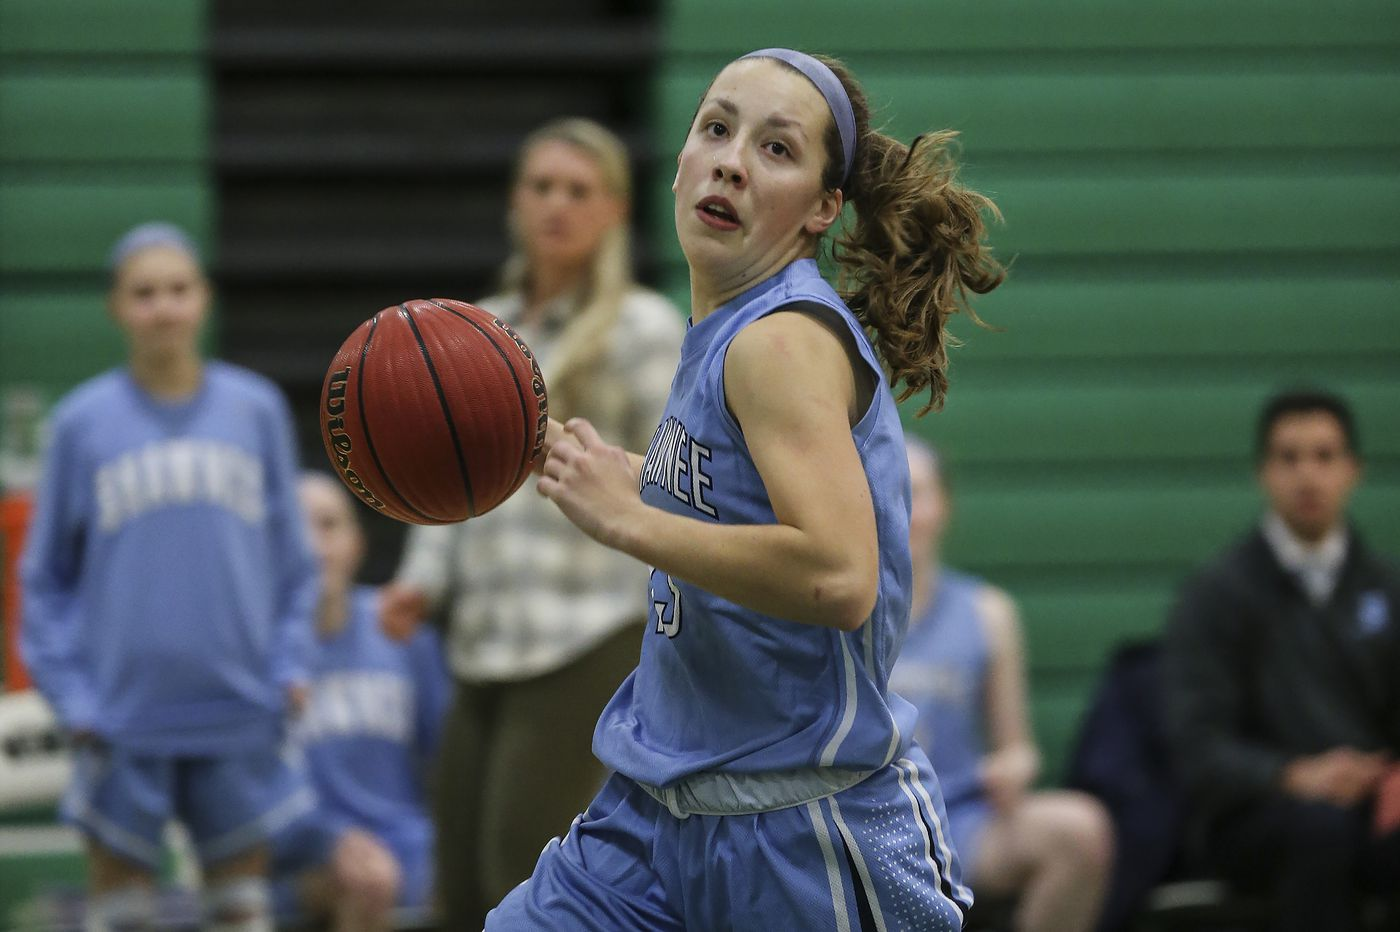 Sierra Sanson is hard-nosed leader for Shawnee girls basketball